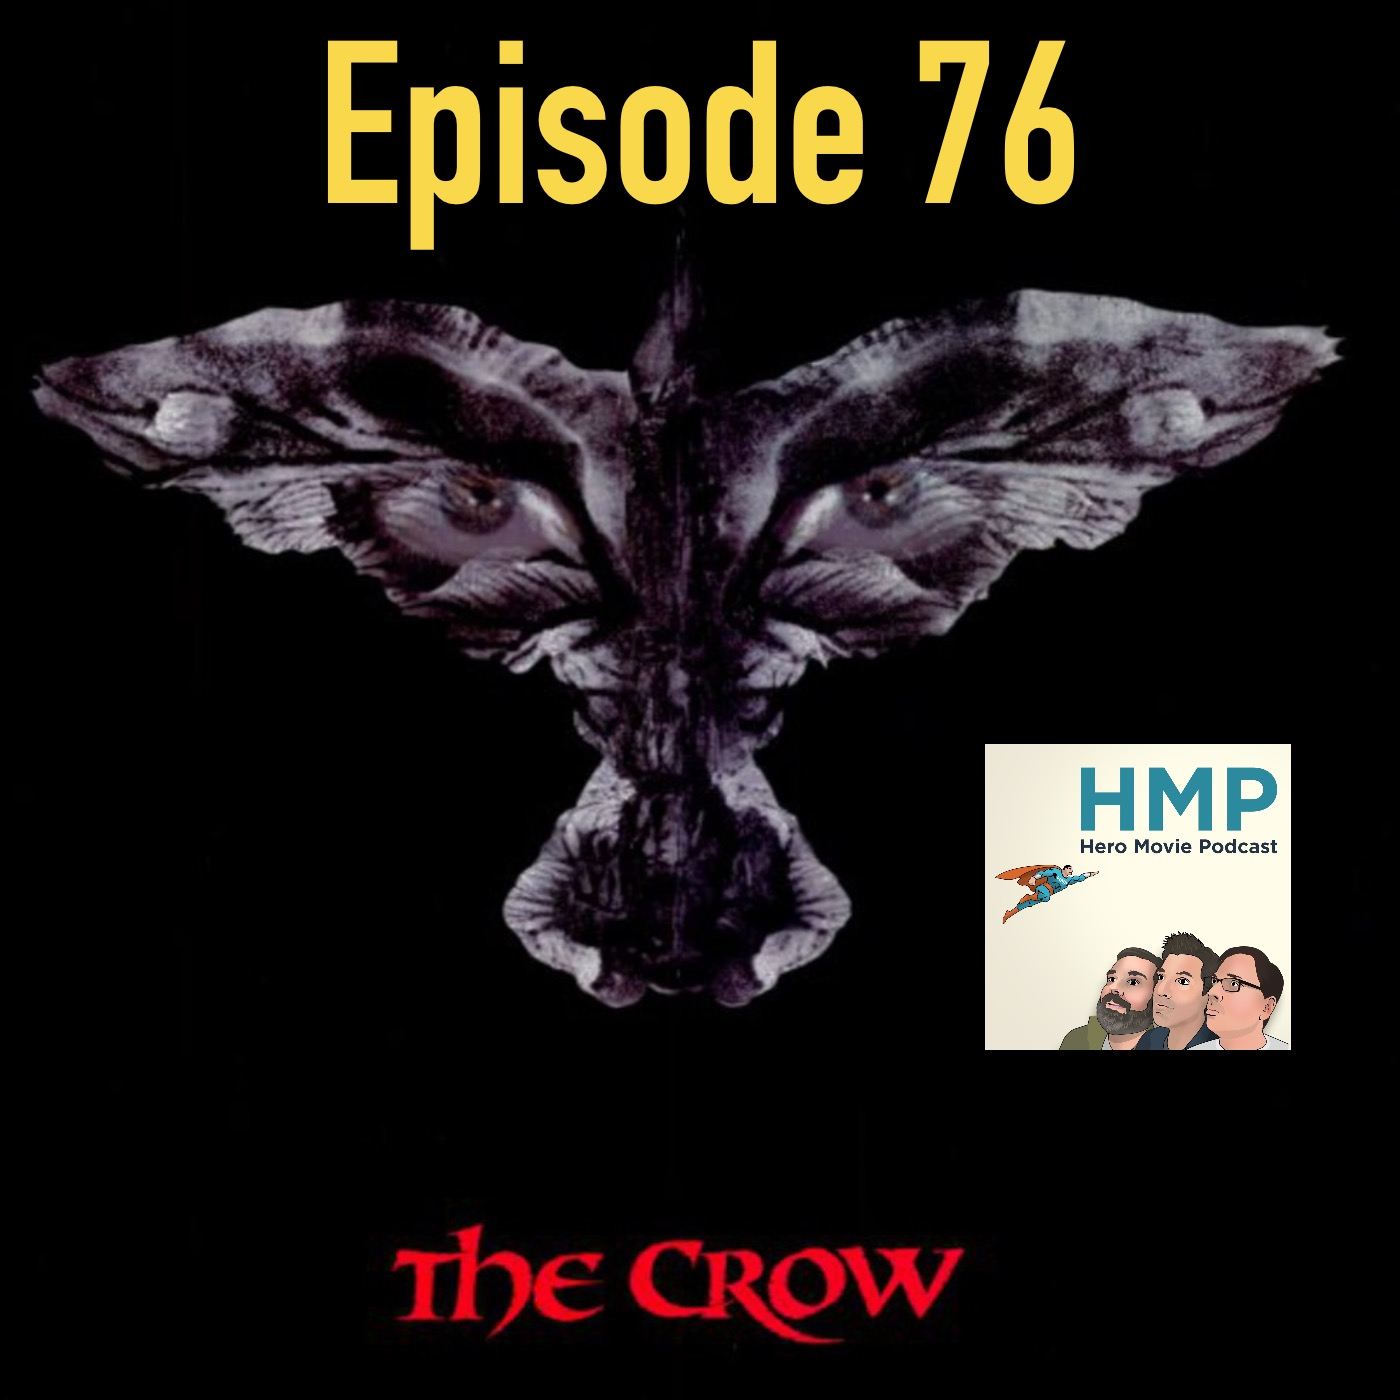 Episode 76- The Crow